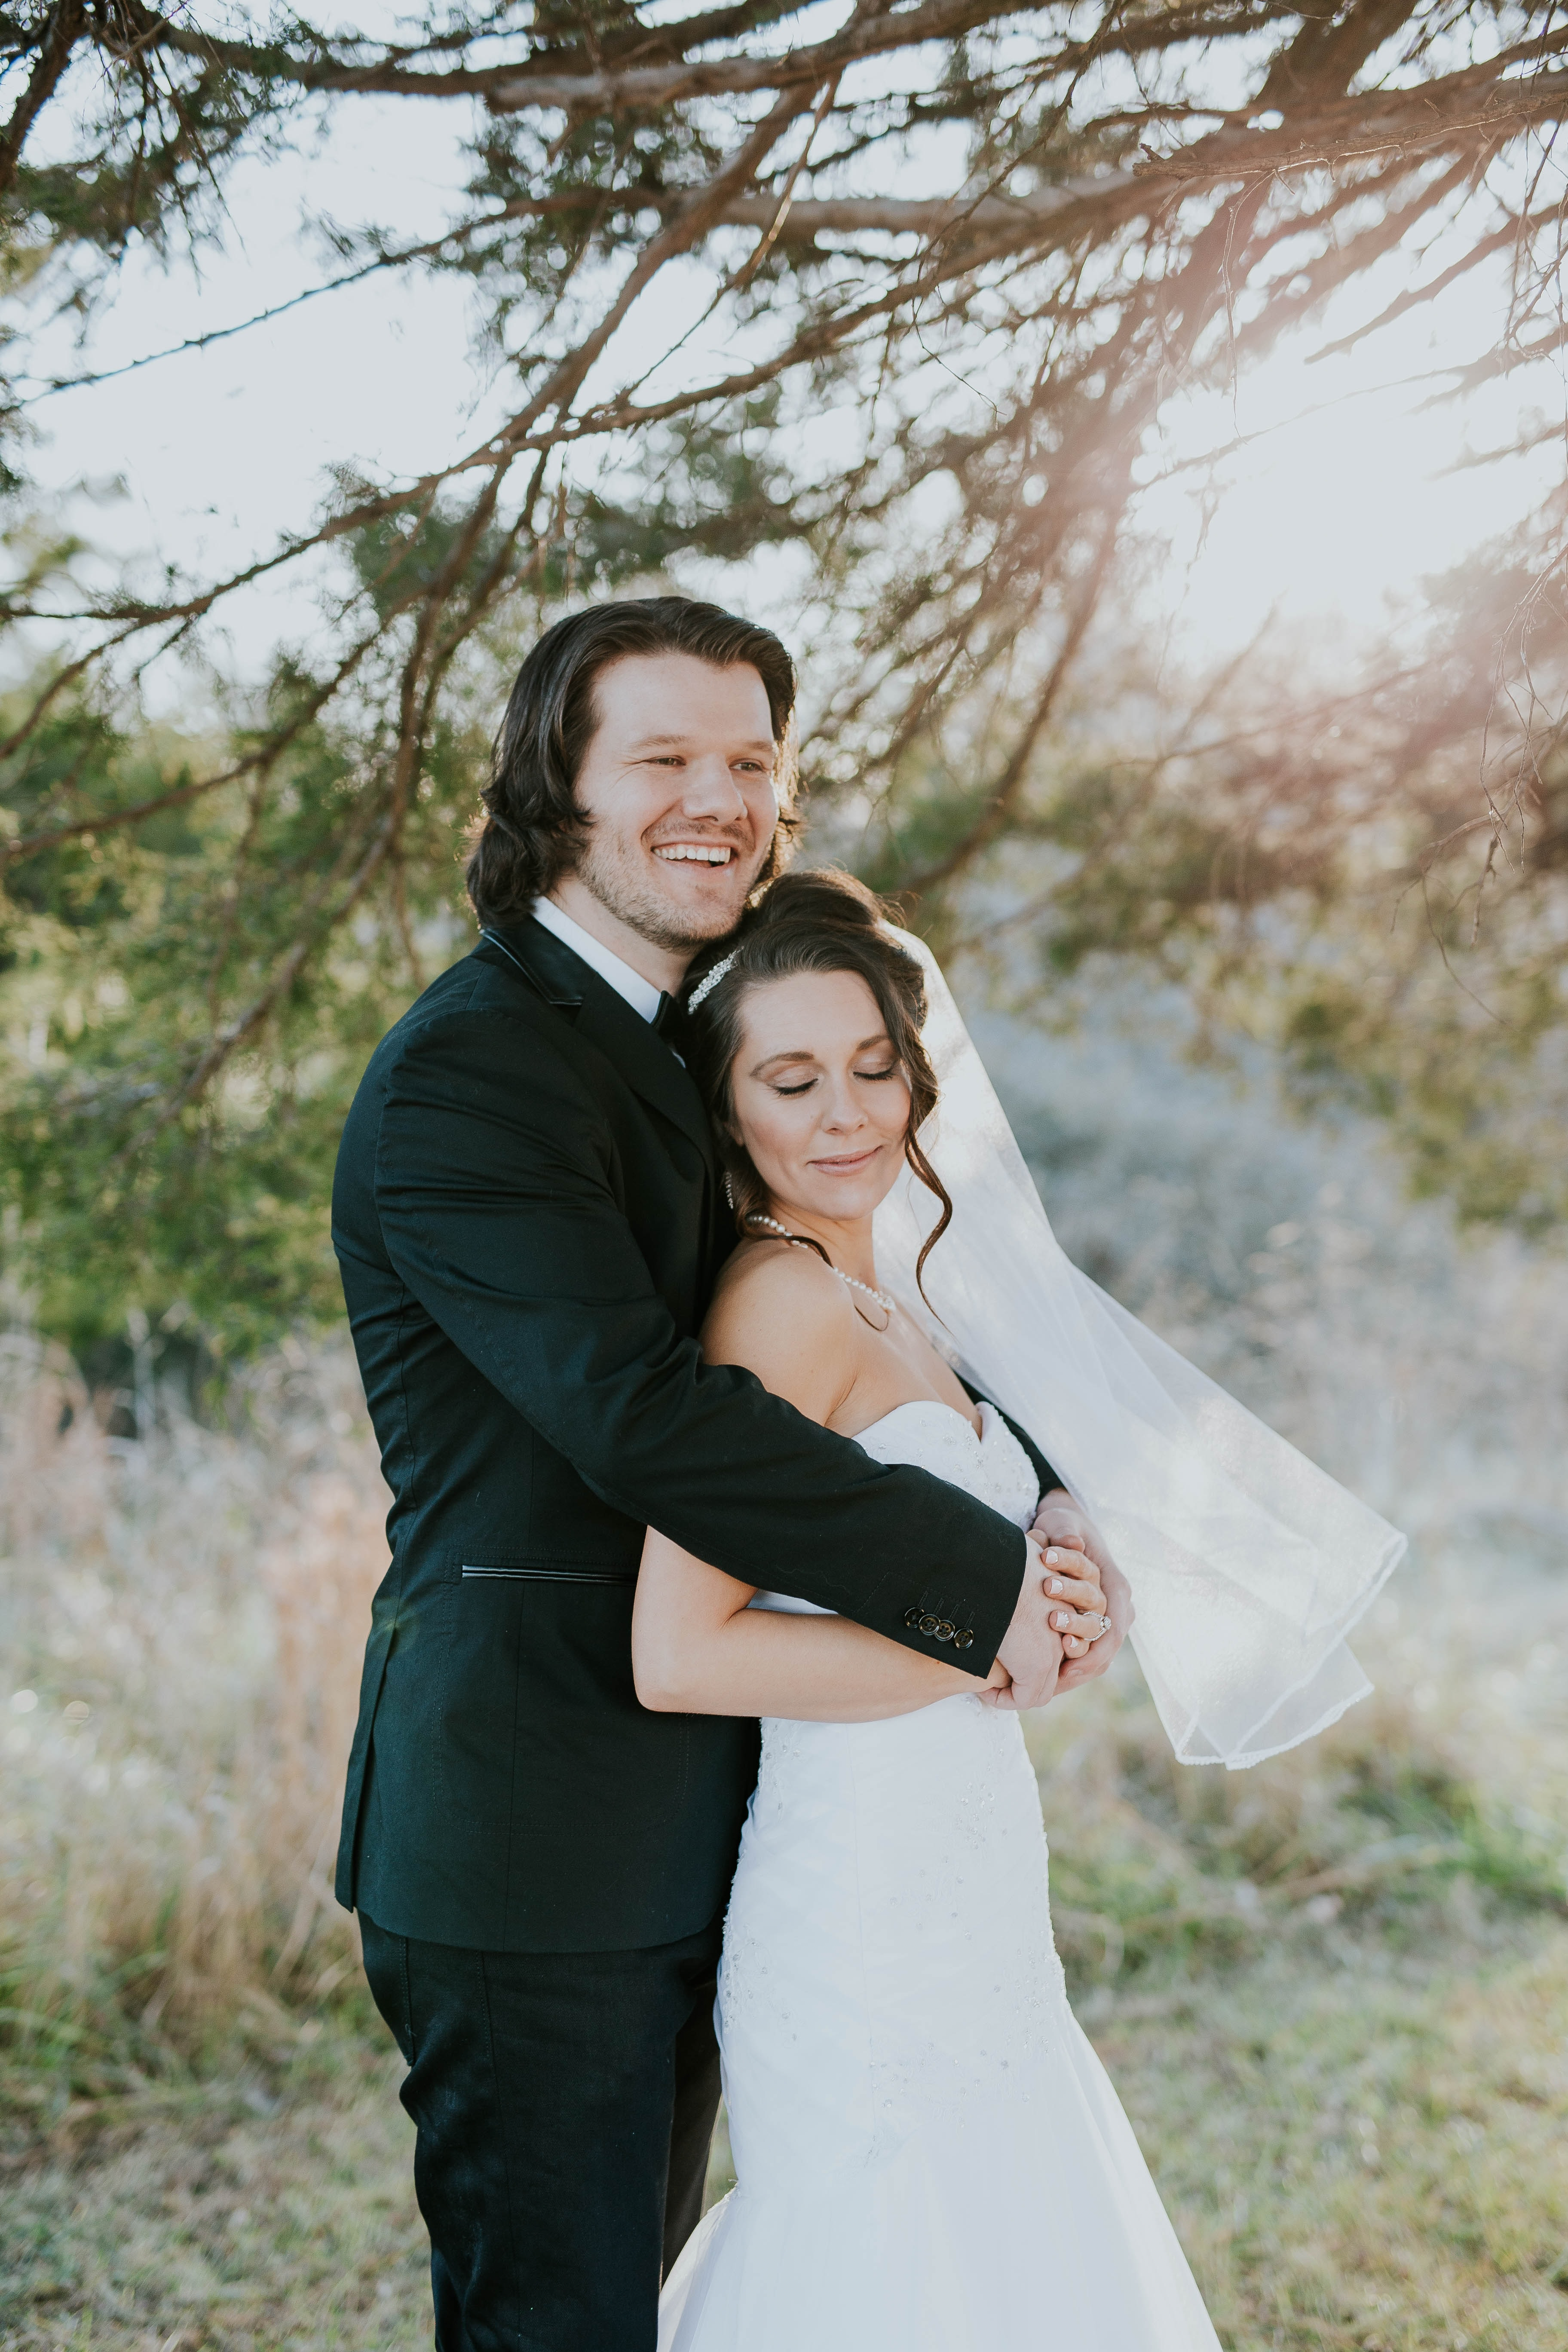 A bride in her wedding dress and groom in a suit embrace in a sunny meadow.